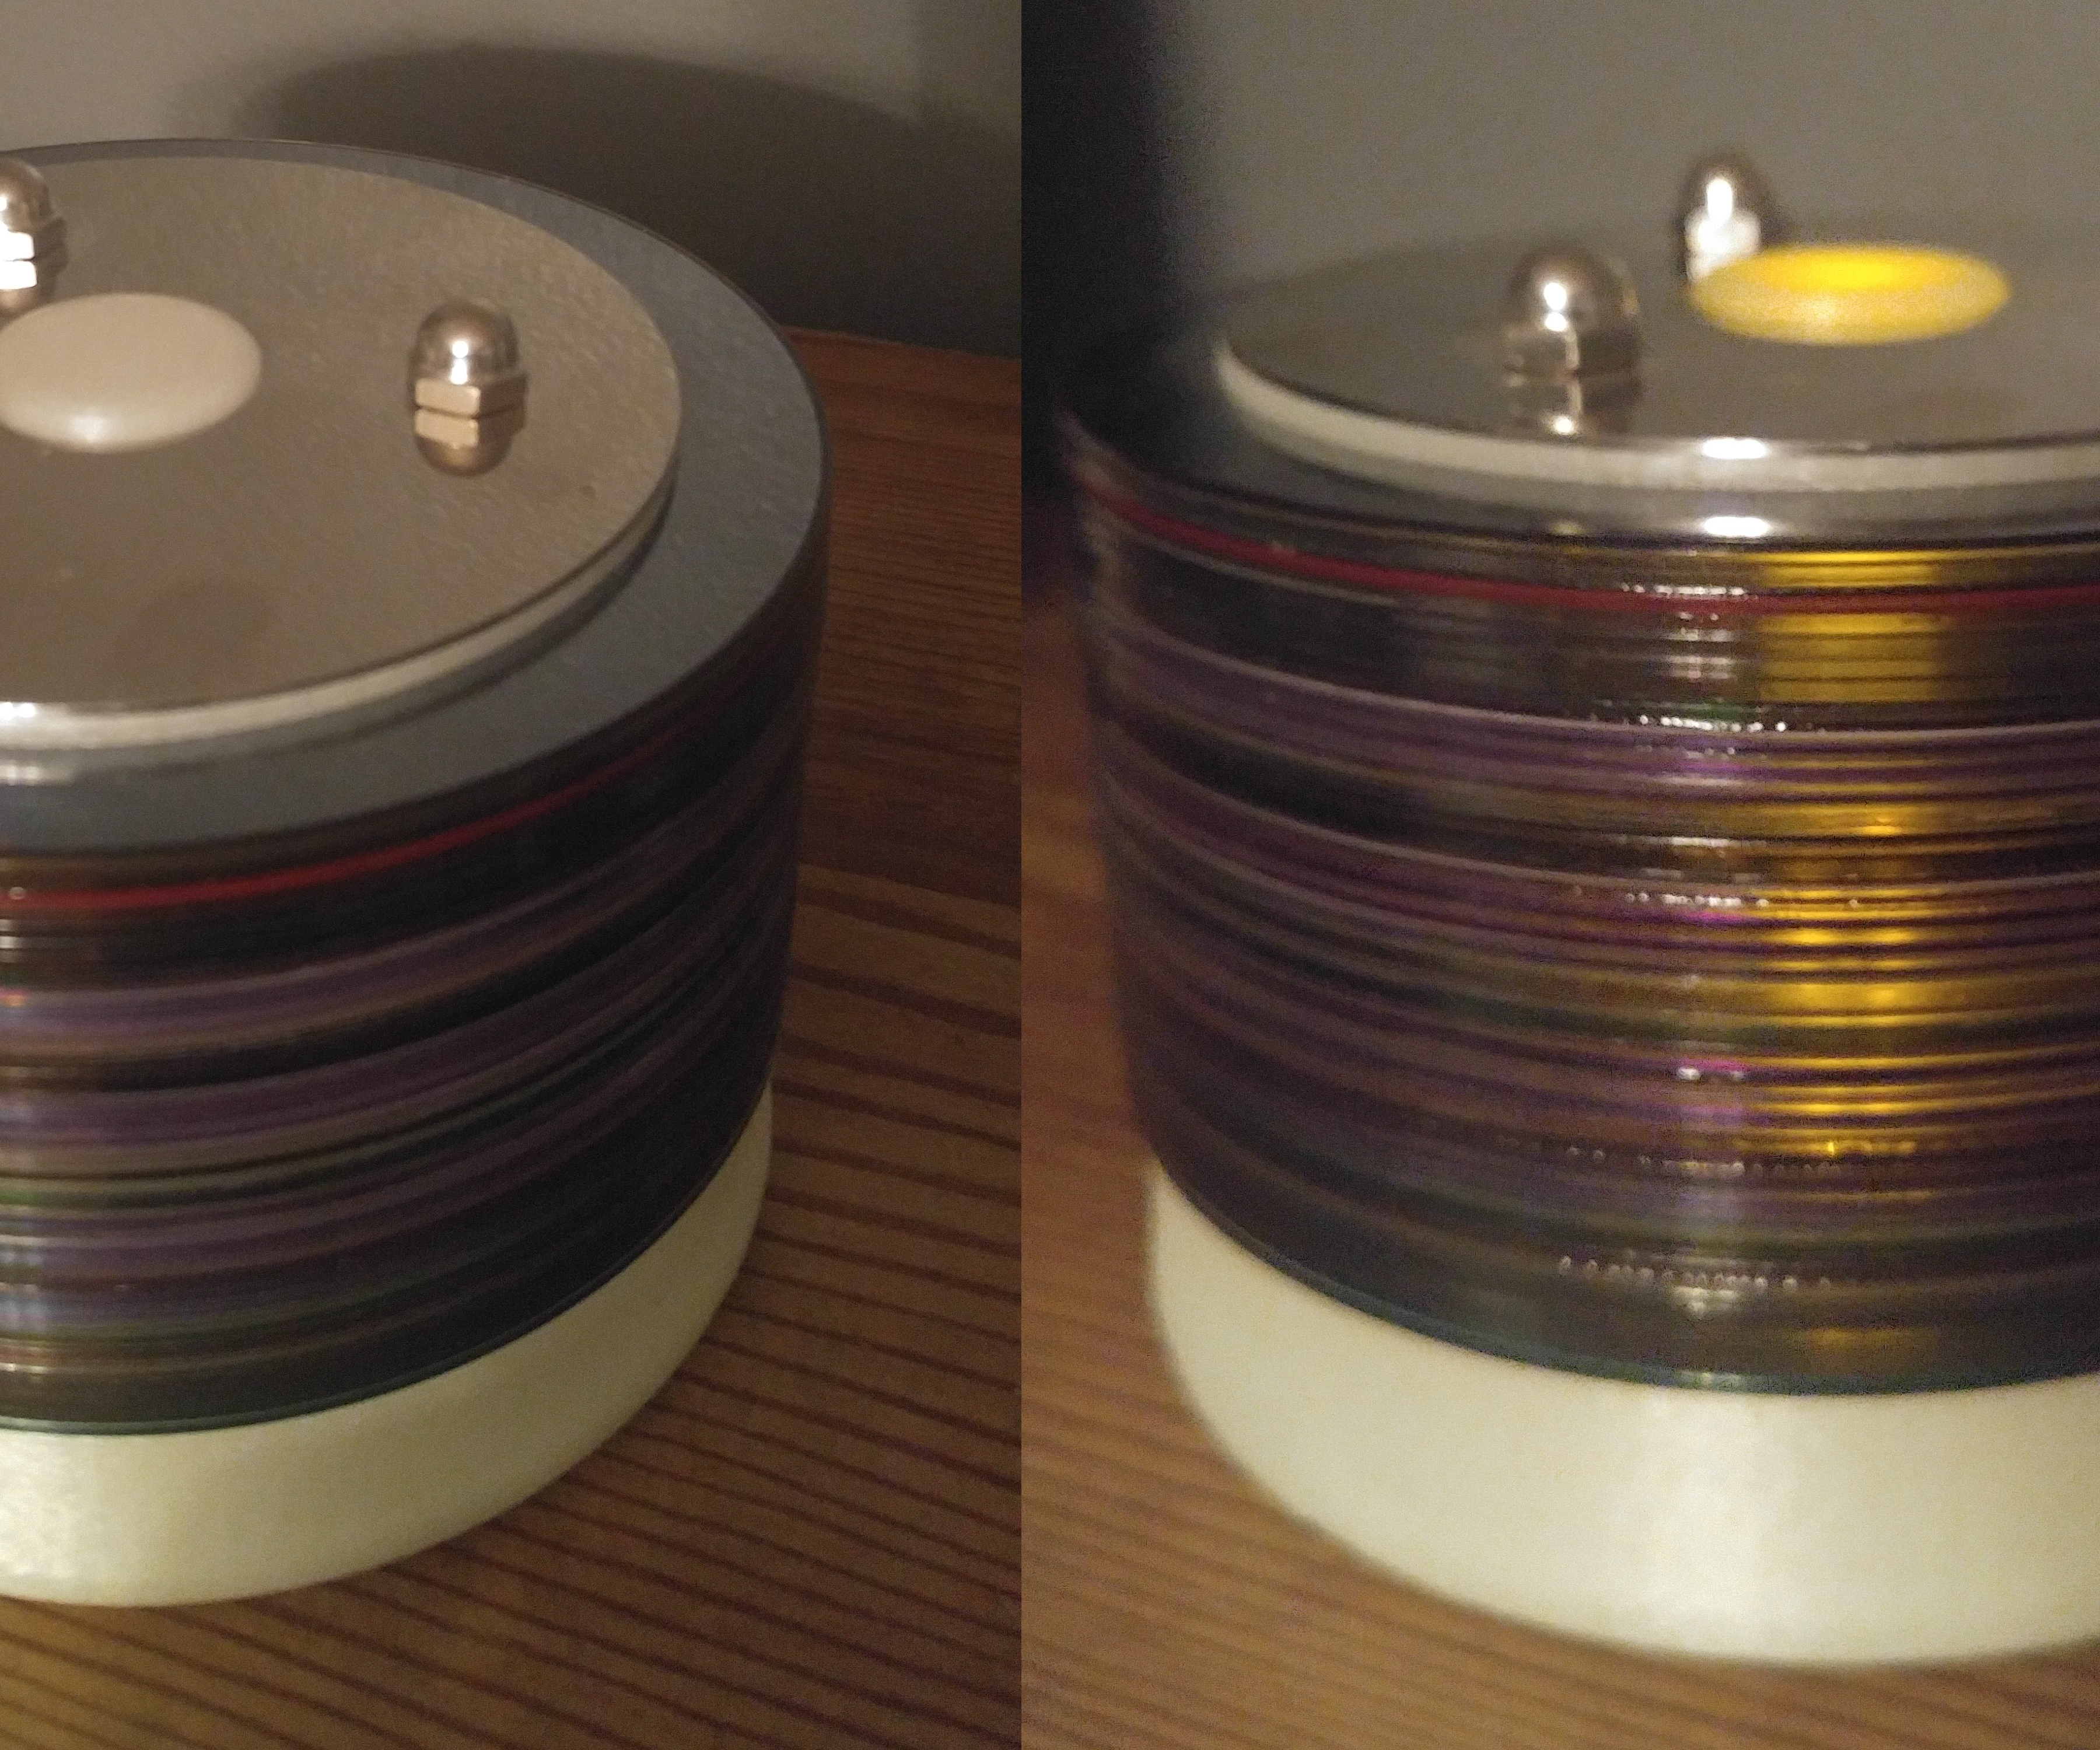 Touh activated recycled glow in the dark CD Lamp